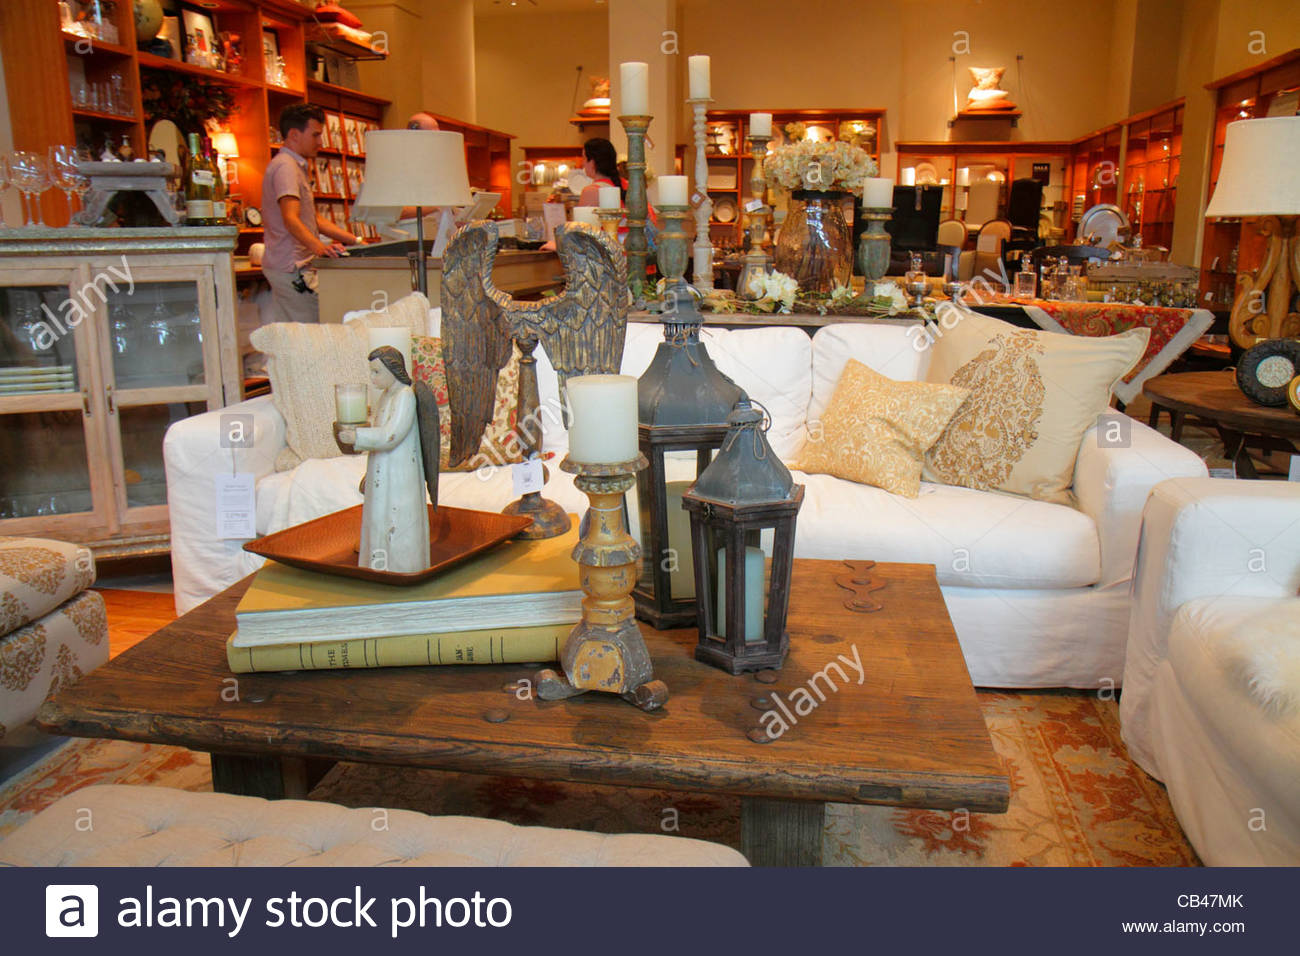 Pottery Barn Stock Photos Amp Pottery Barn Stock Images Alamy